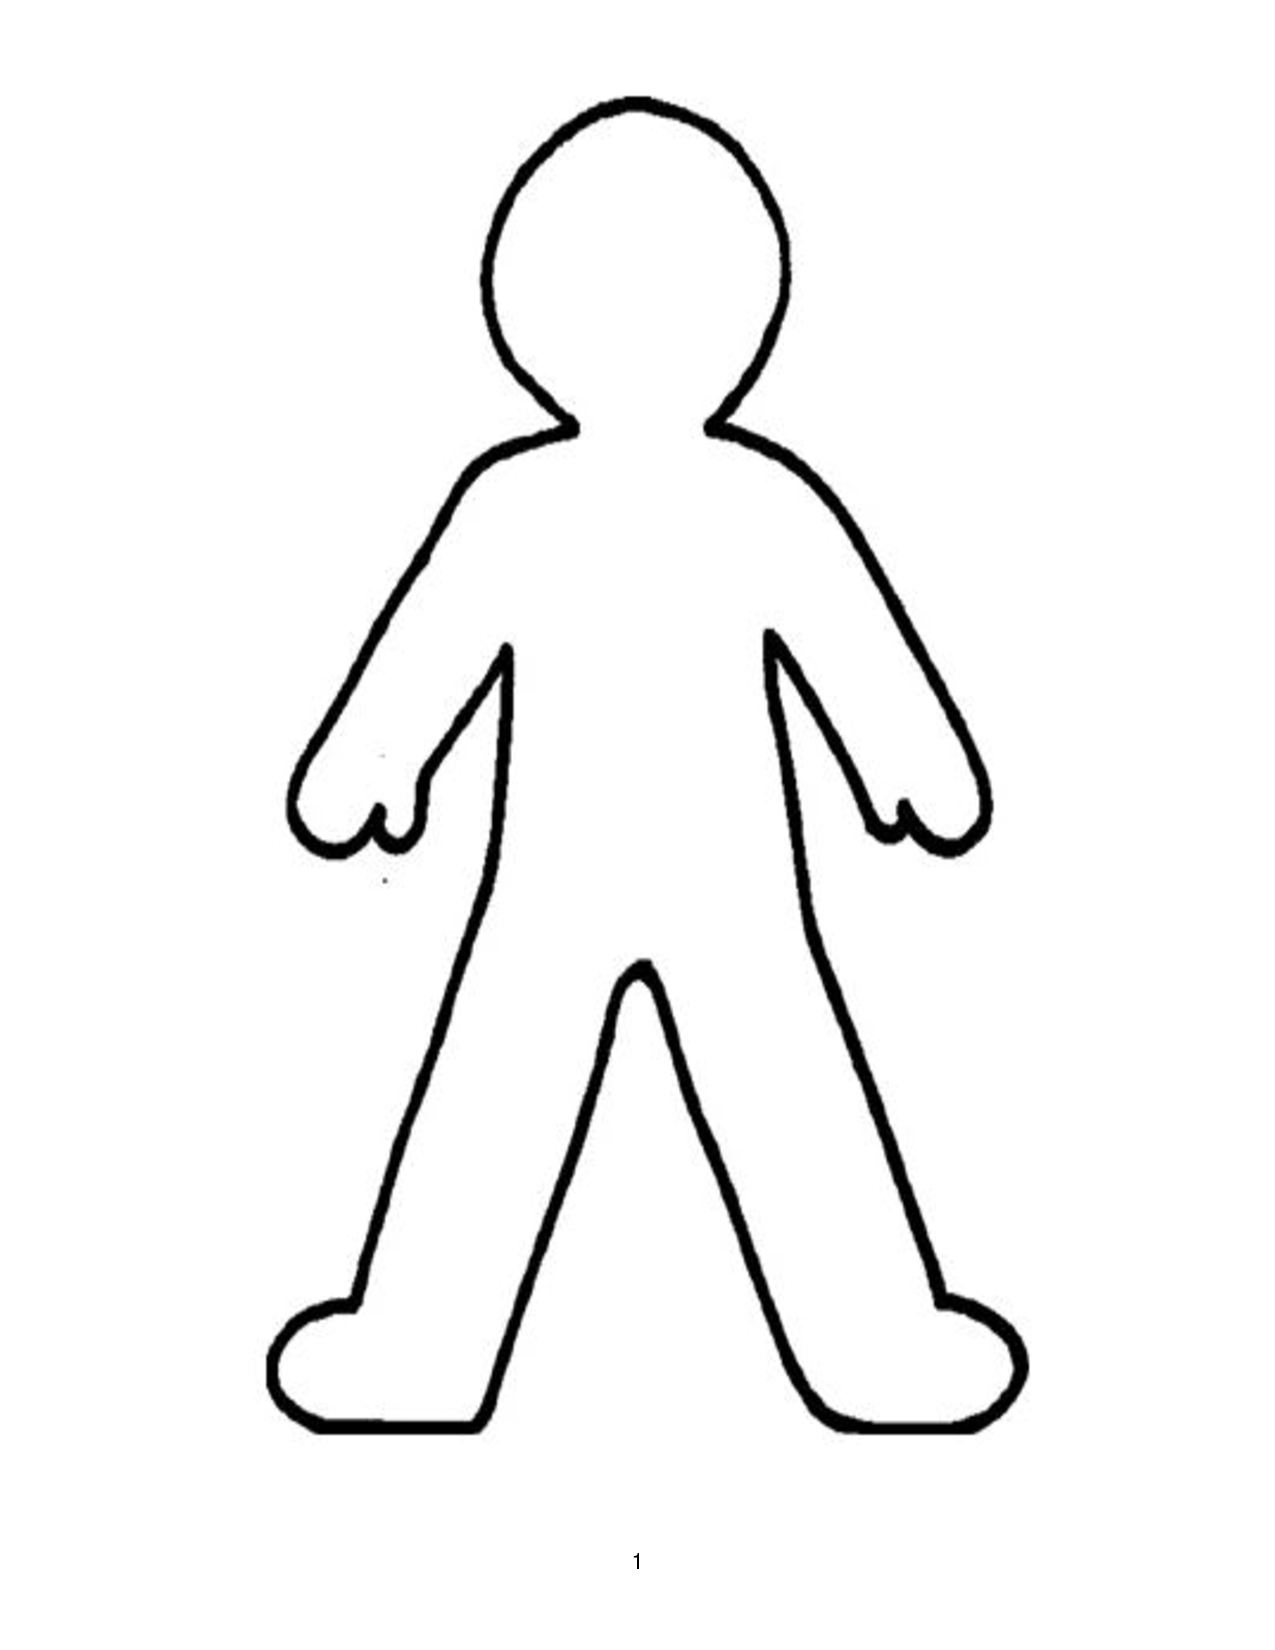 clipart of a human body - photo #37